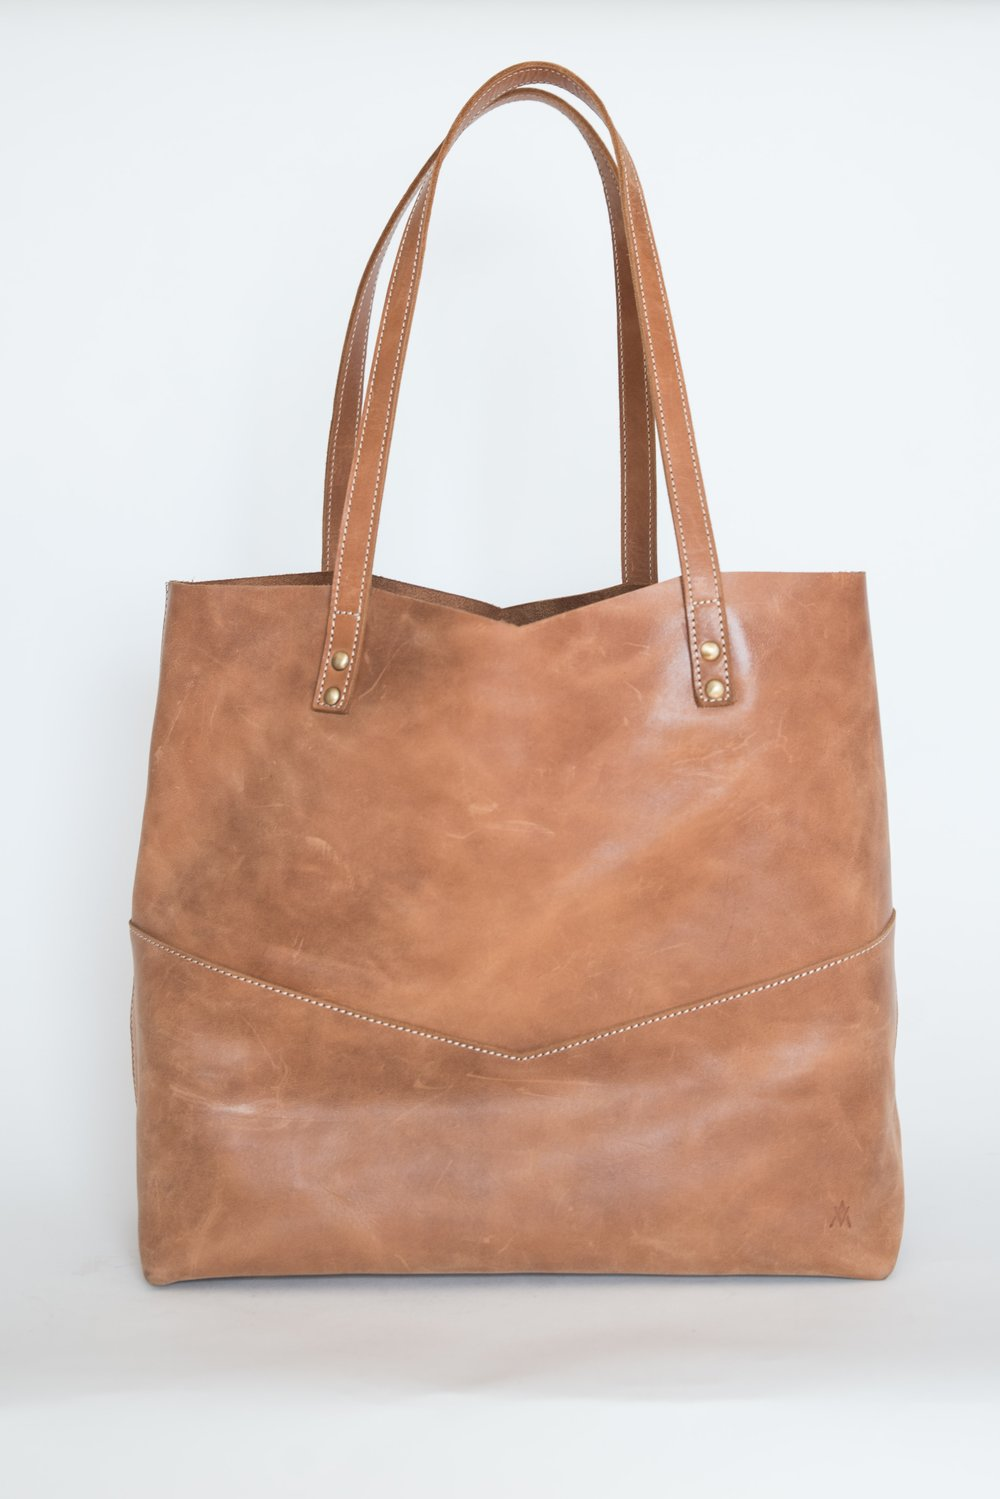 Travelers Tote Eco-Camel by ELEVATE, TO THE MARKET, $159.95